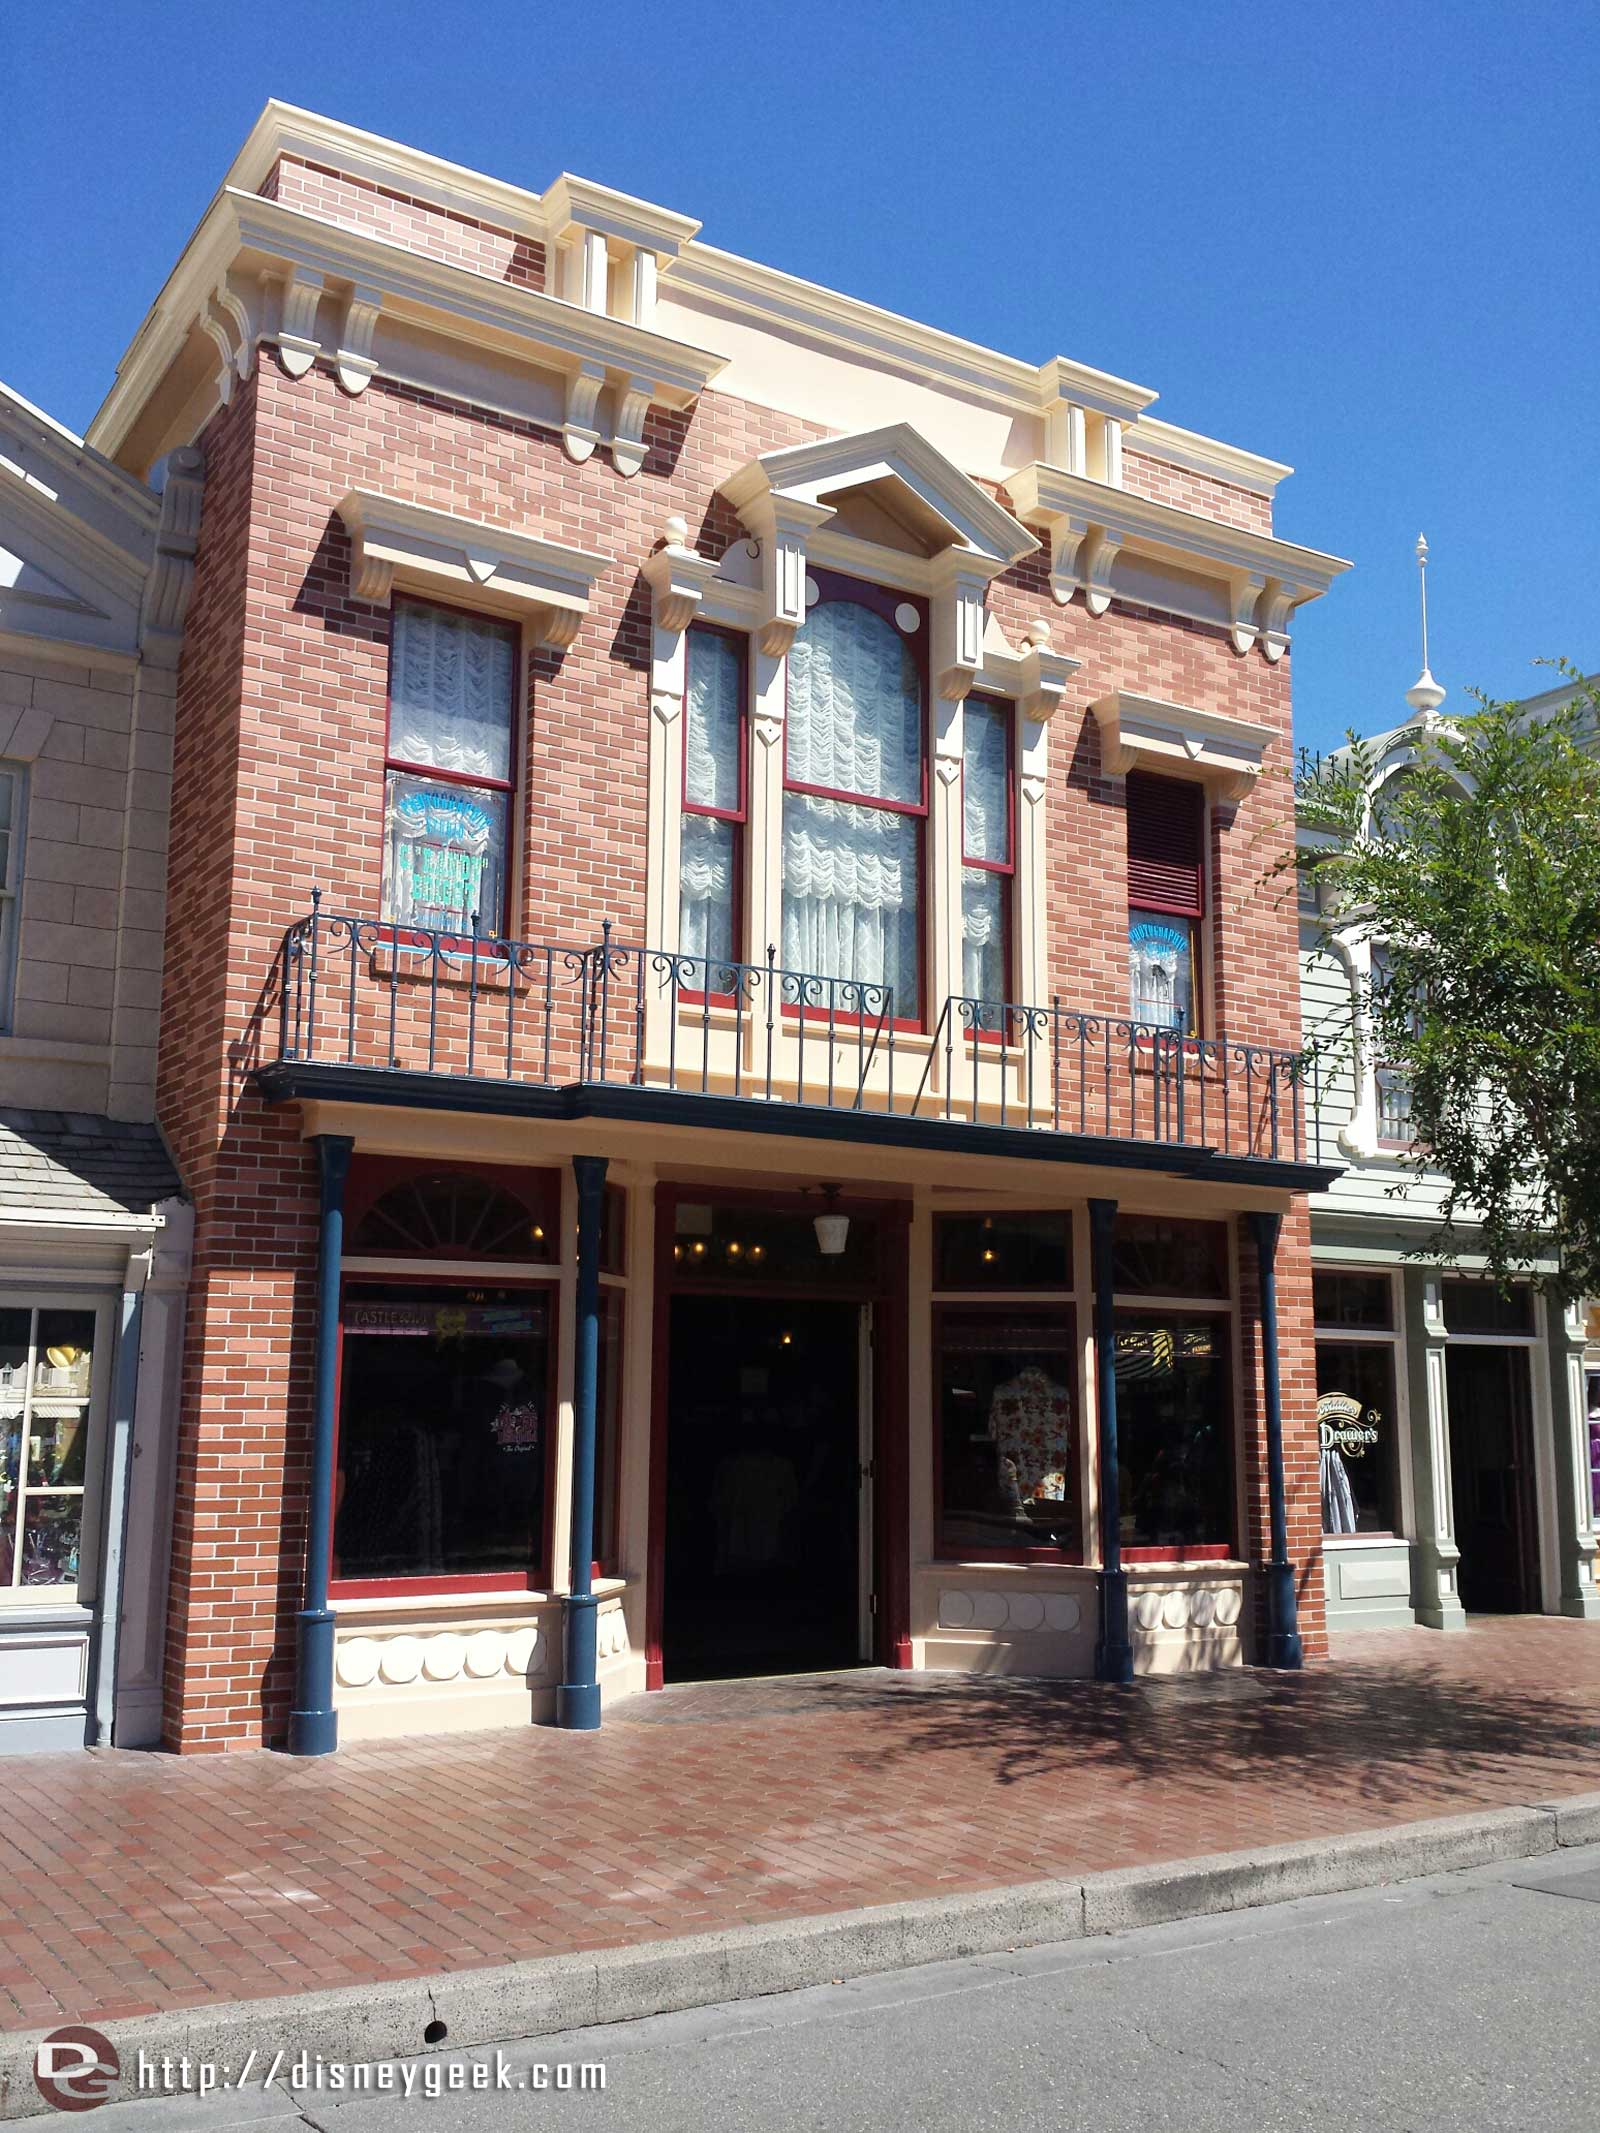 The scaffolding is gone from the Castle Bros store on Main Street USA #Disneyland